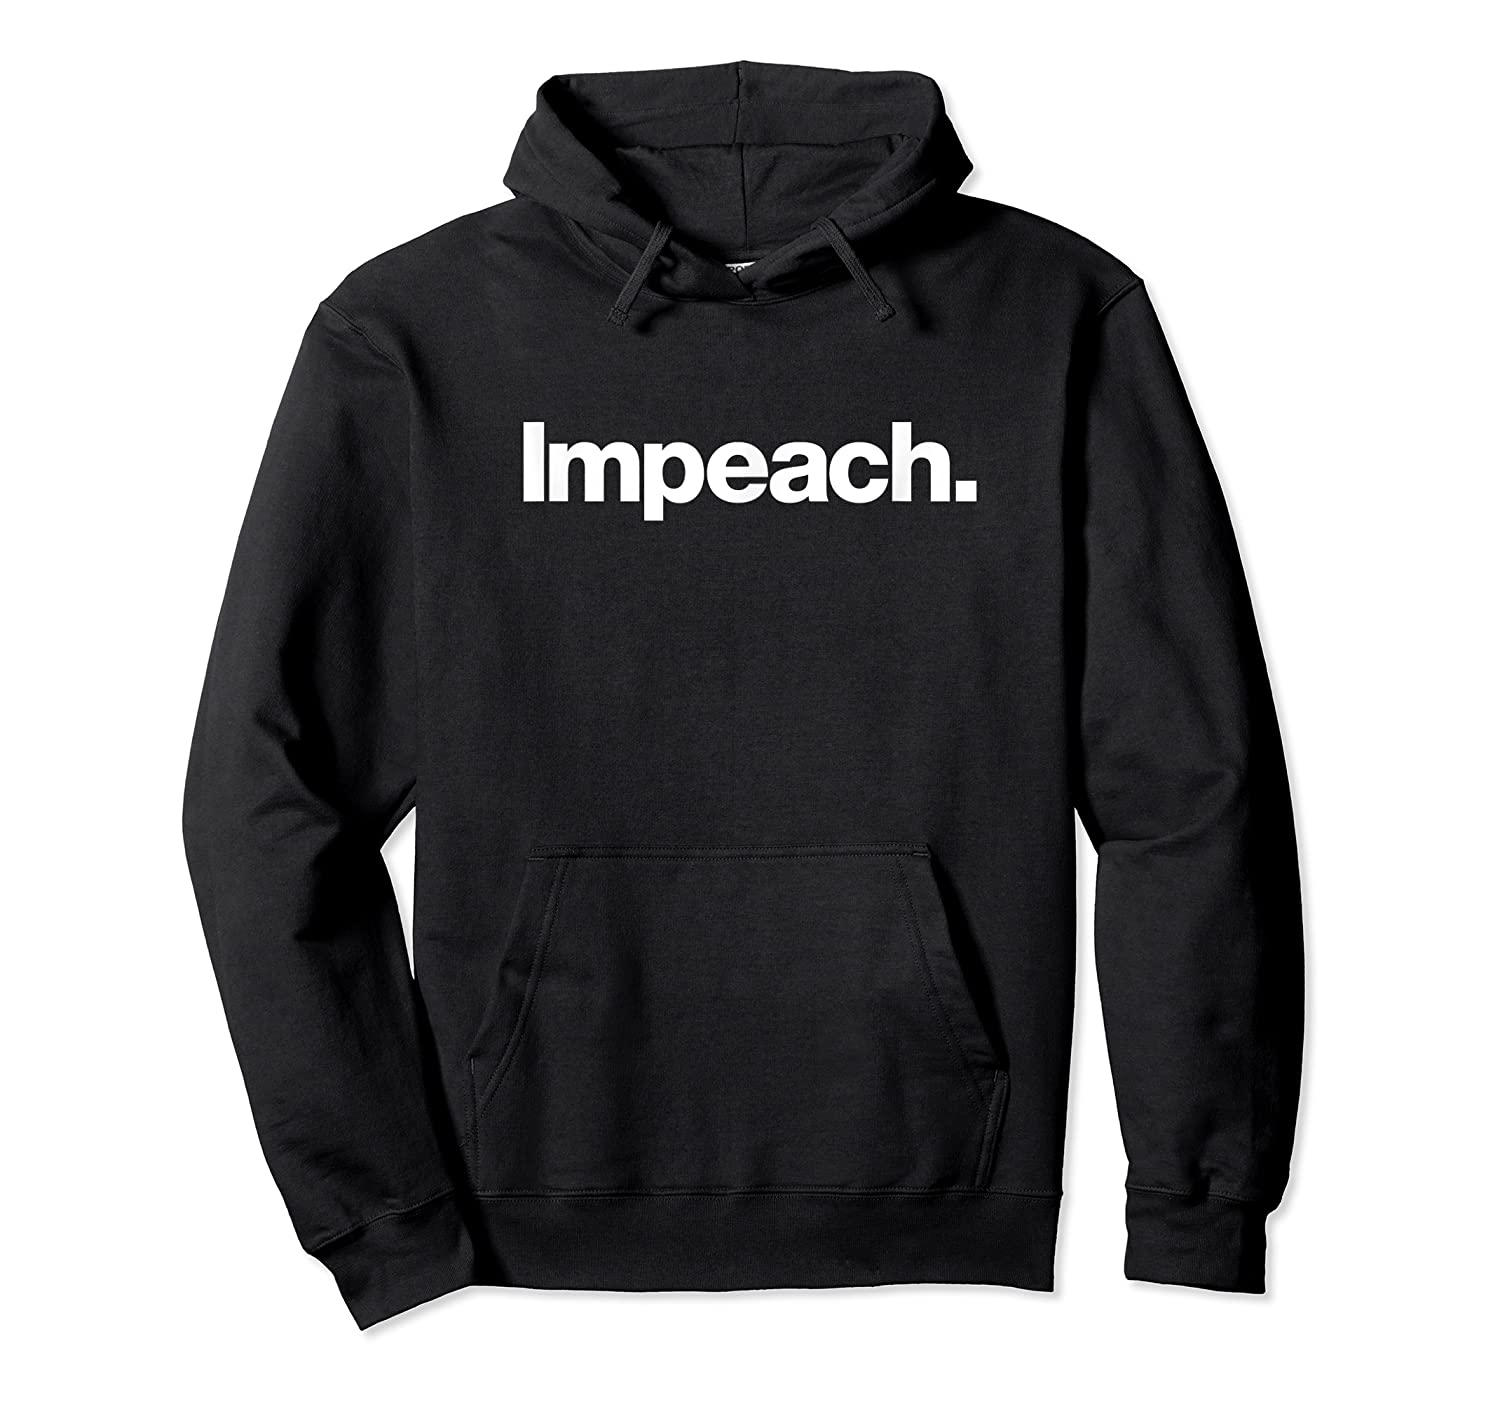 The Impeach T Shirt A Shirt That Says The Word Impeach Unisex Pullover Hoodie